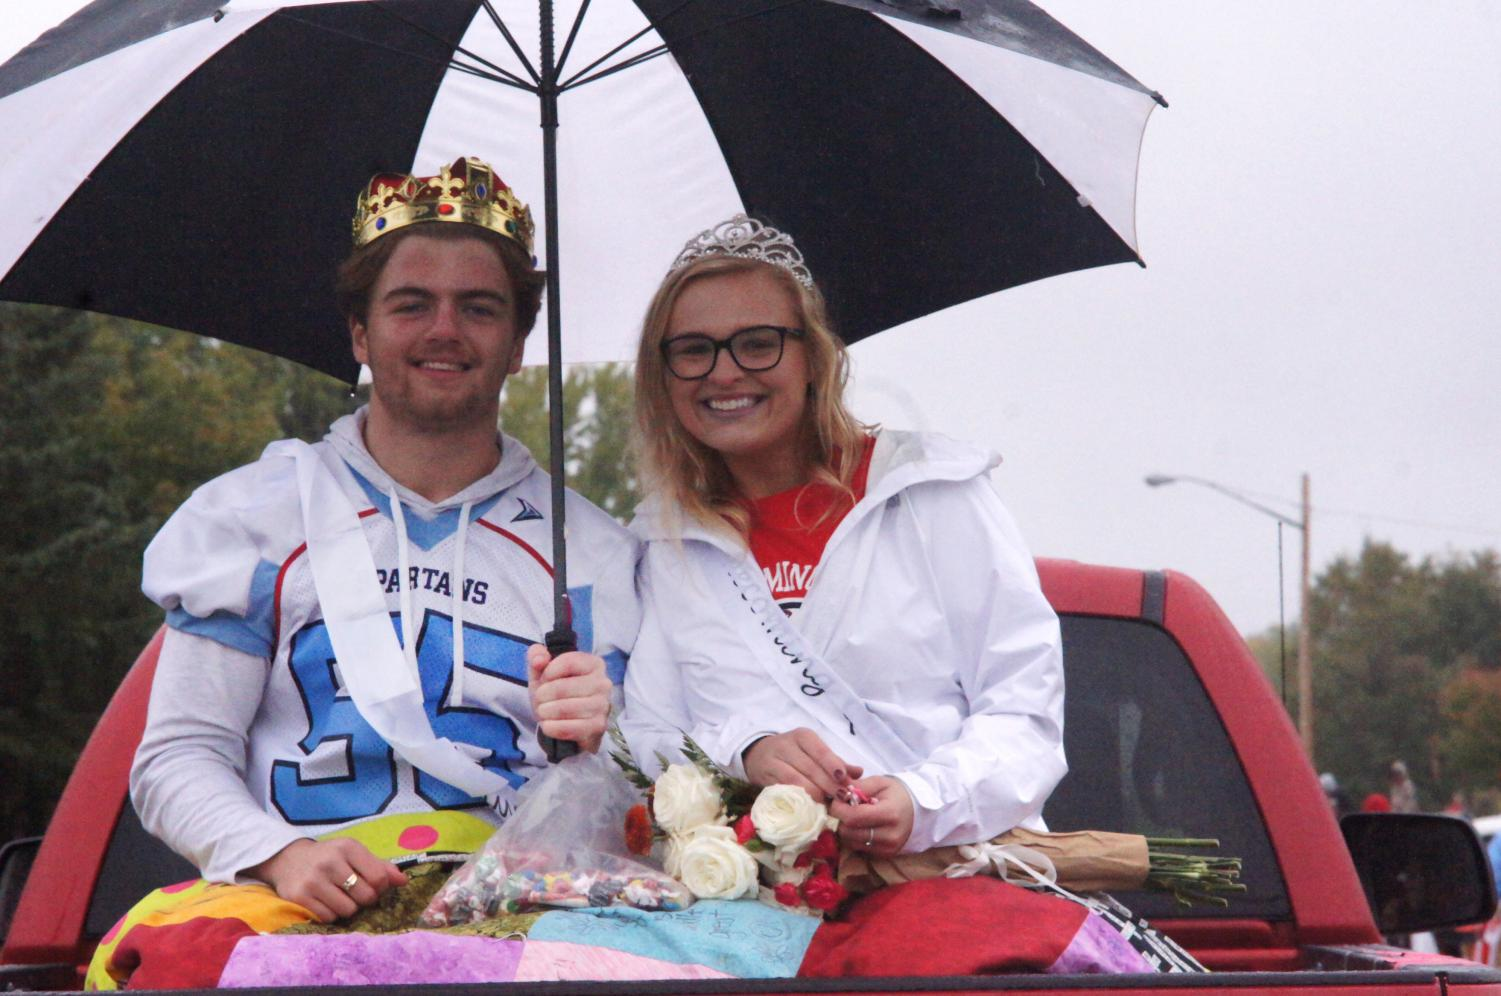 Homecoming queen and king Mady Stariha and Lars Root pose for a photo during the Homecoming parade while throwing candy to the spectators on Oct 5.